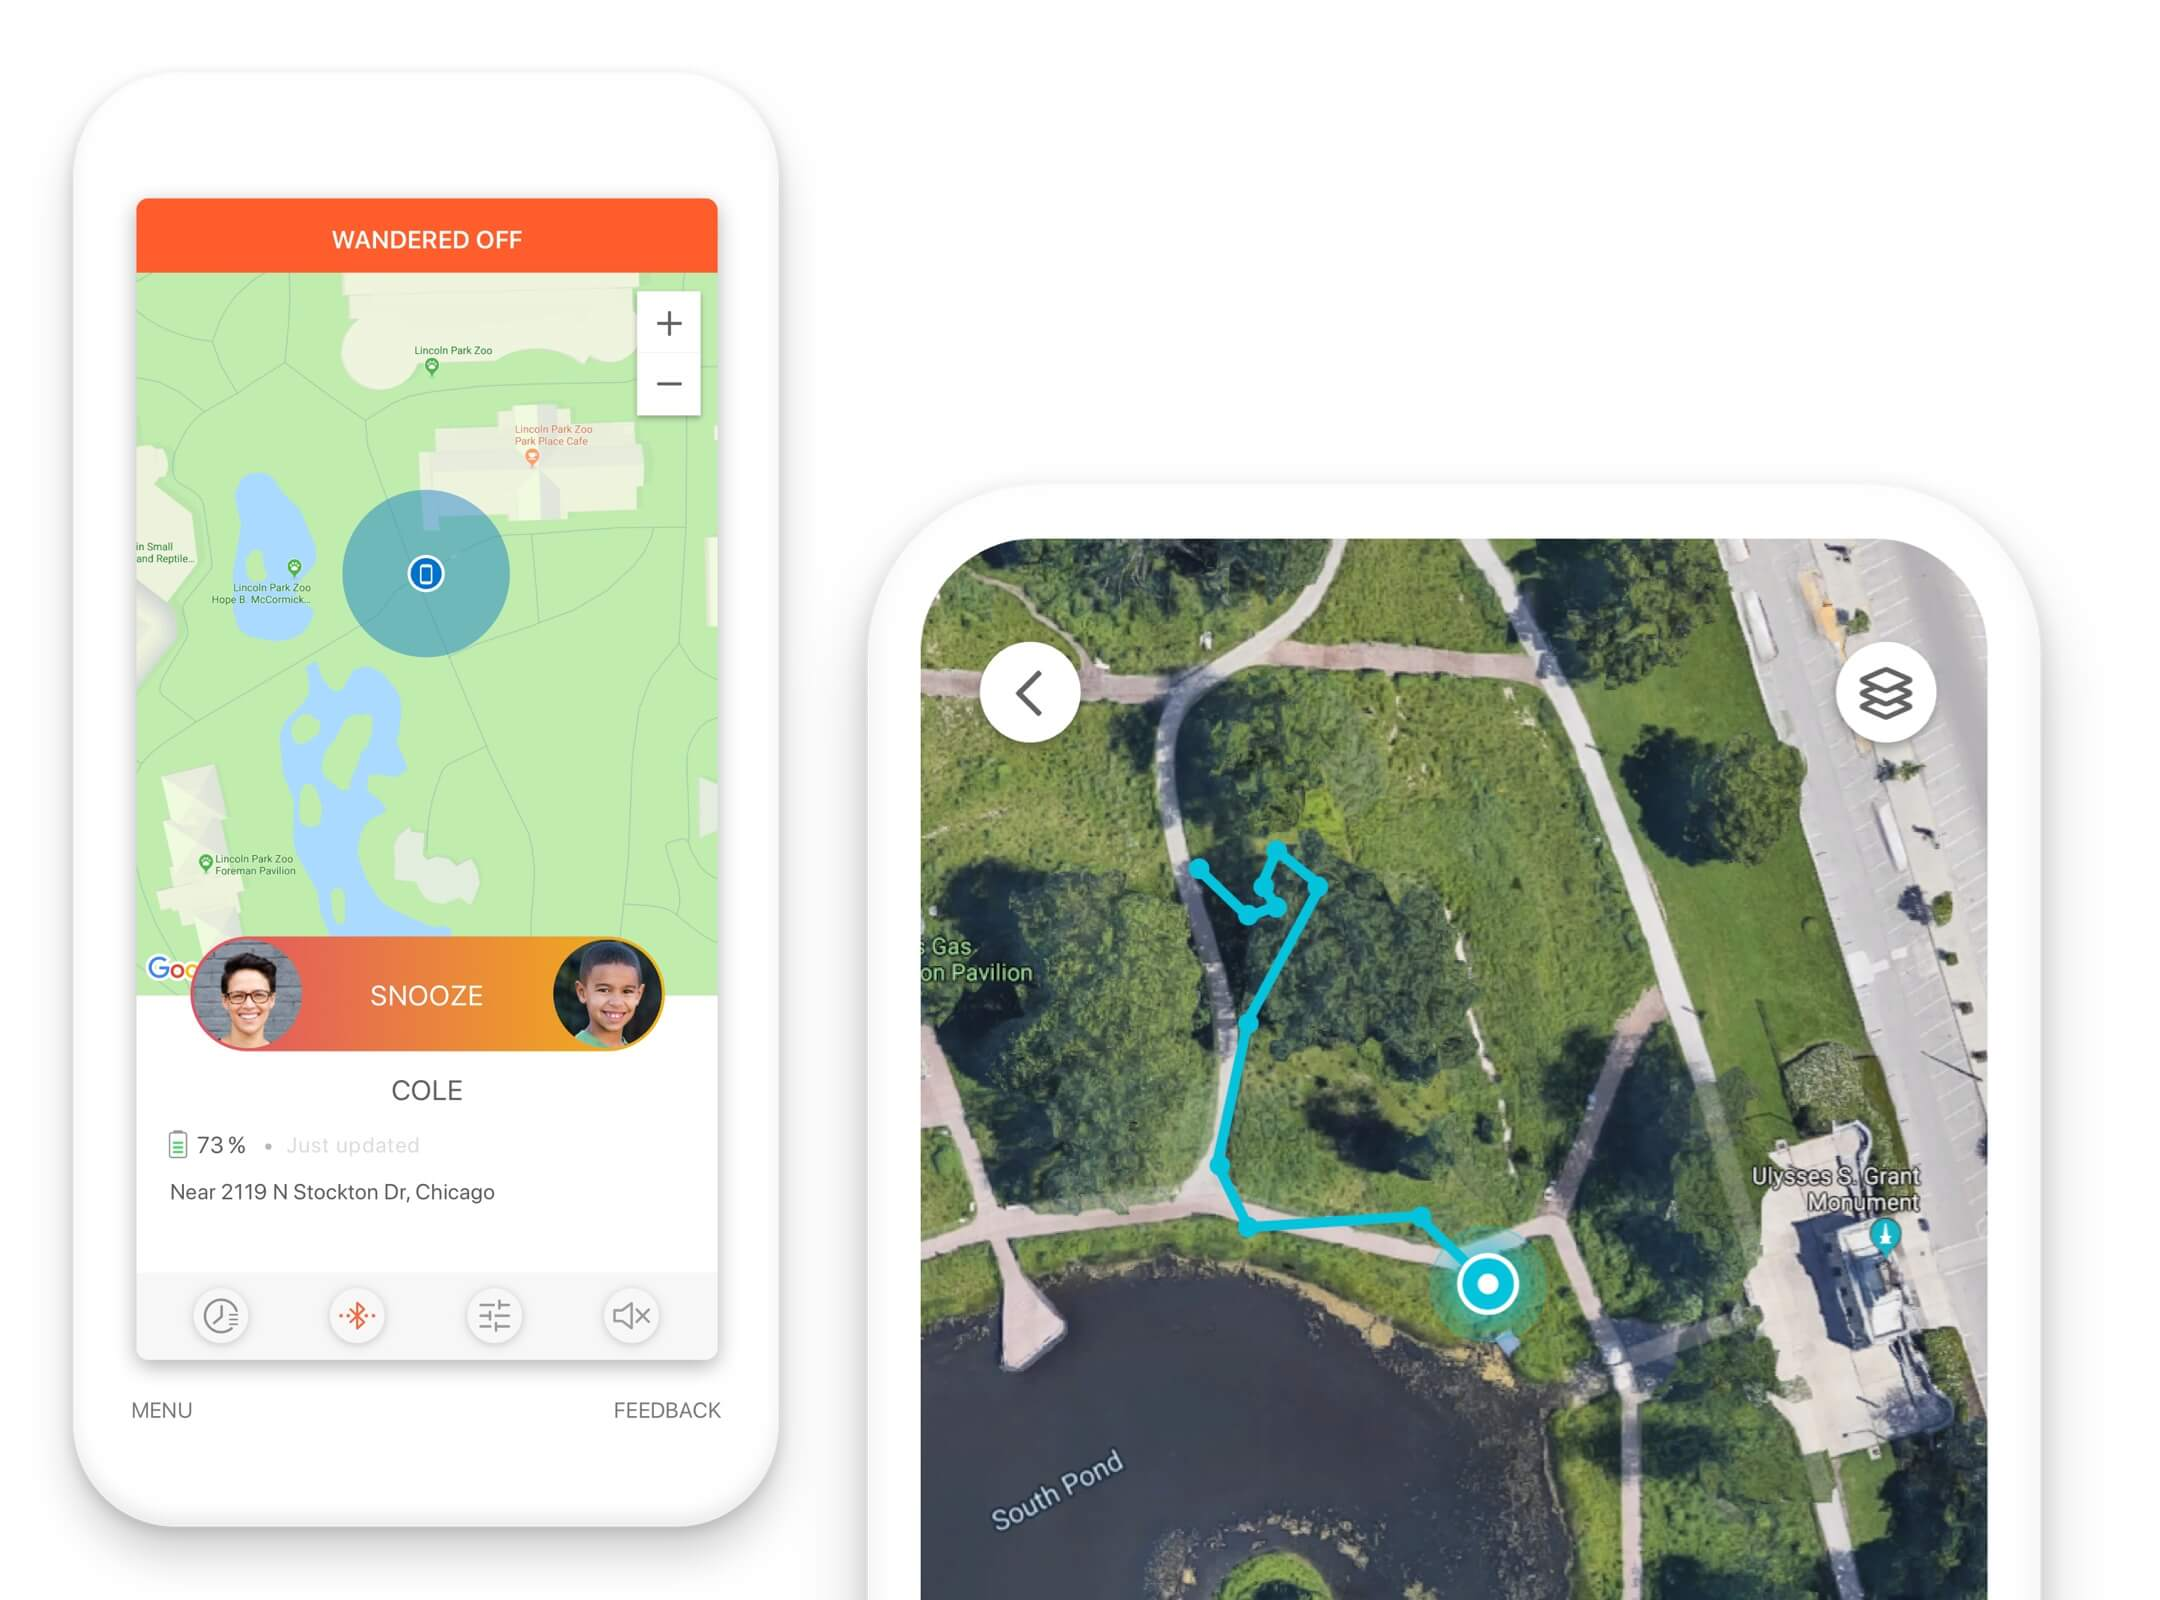 The Jiobit App can show you live tracking on a map and give you notifications when they wander too far